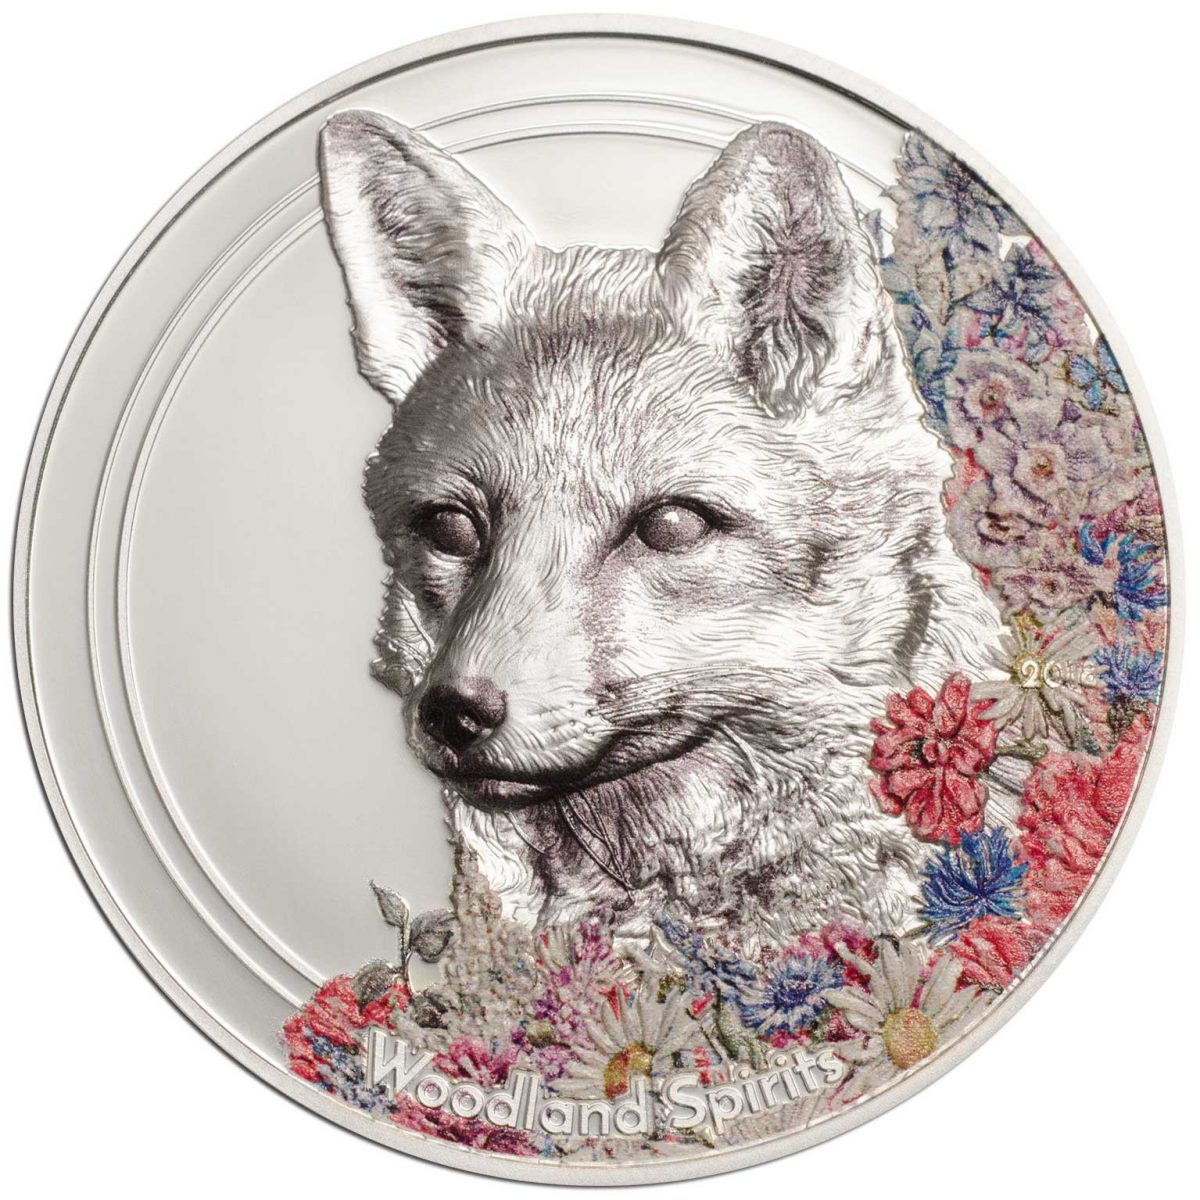 Woodland Spirits - Fox 2018 1oz Silver